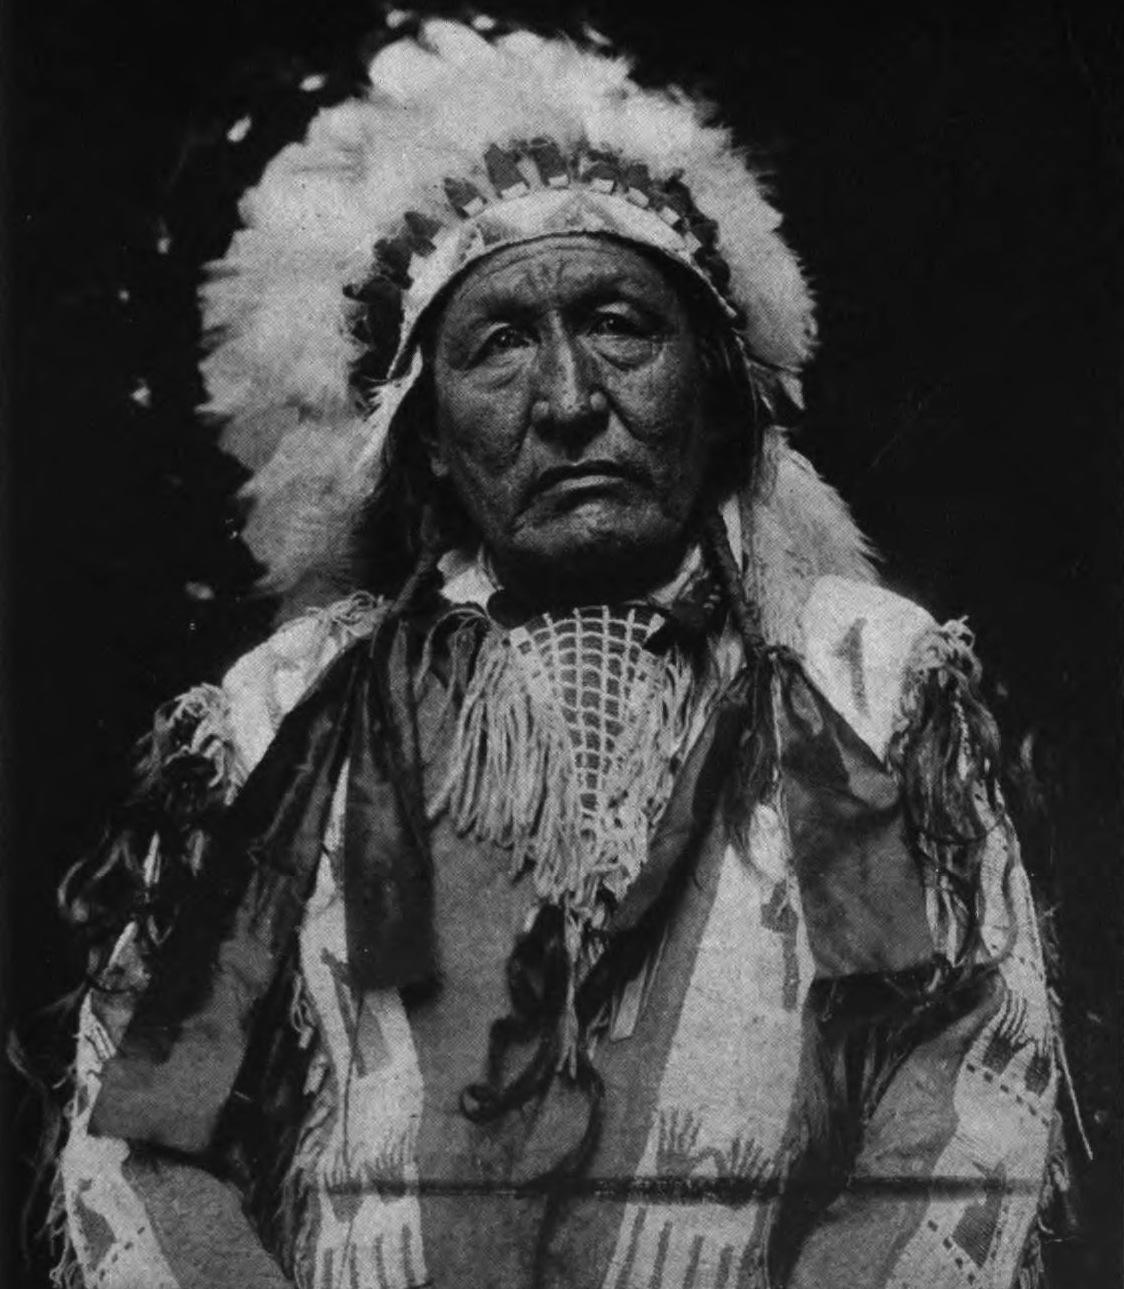 Clara Caufield: Remembering the homecoming of Chief Little Wolf